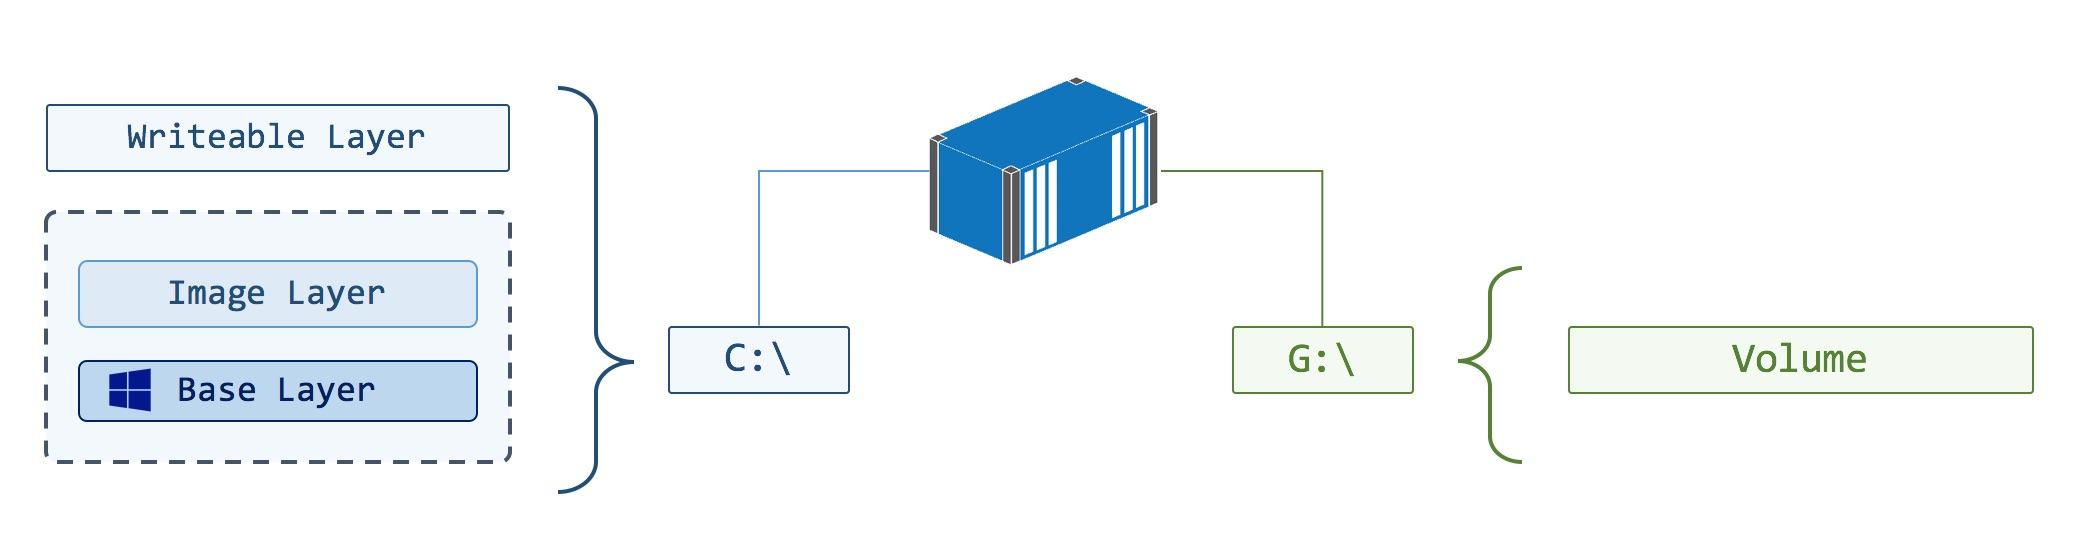 Docker Volumes on Windows - Mapping the G Drive for Stateful